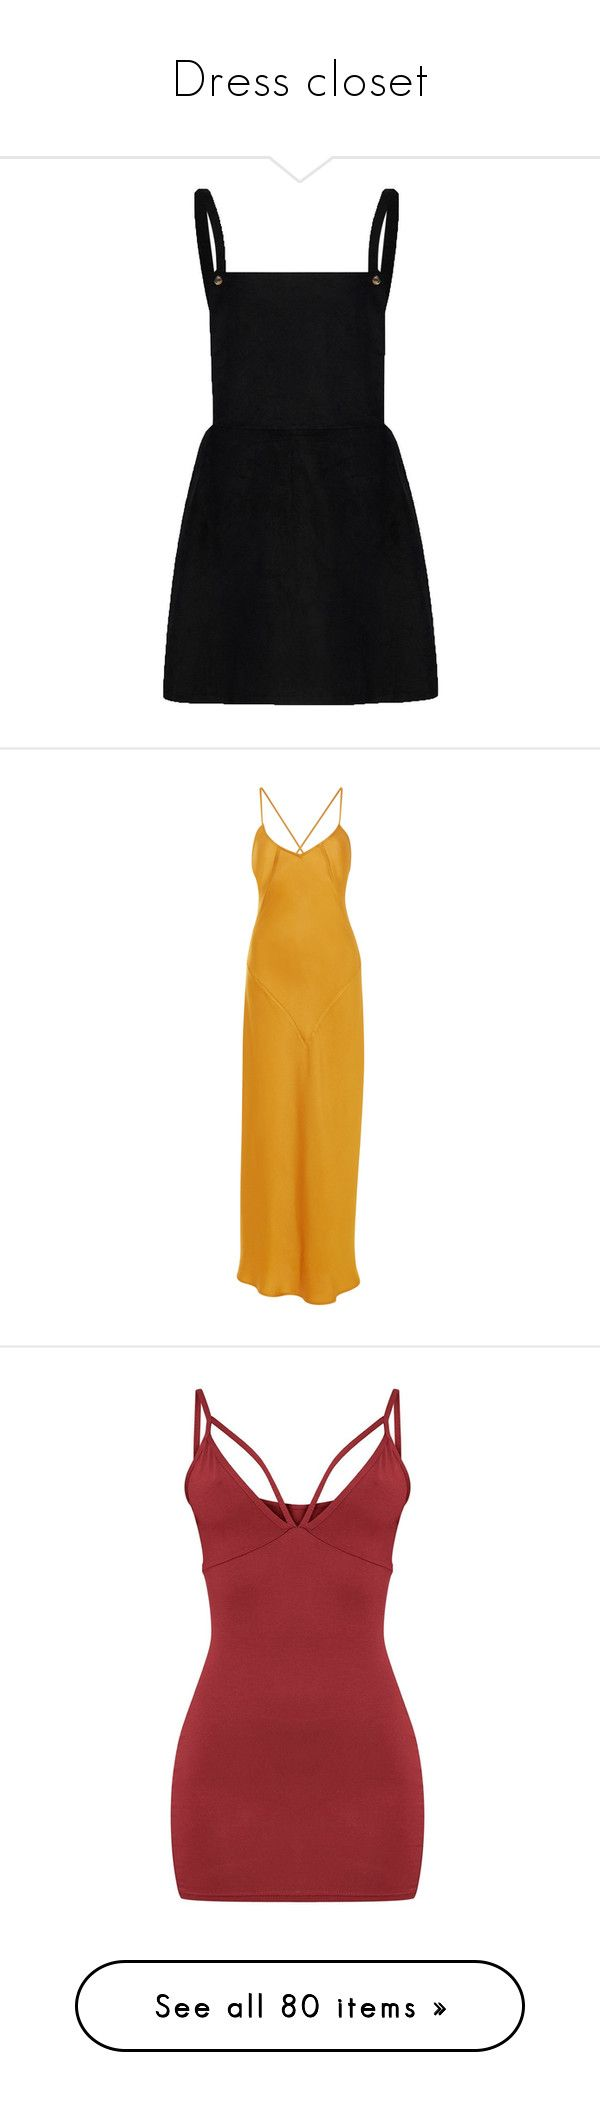 """""""Dress closet"""" by nazarahwiggins on Polyvore featuring dresses, overalls, pinny dress, square neckline dress, square neck dress, pinafore dress, maxi dress, gold, tie-dye maxi dresses and crepe dress"""